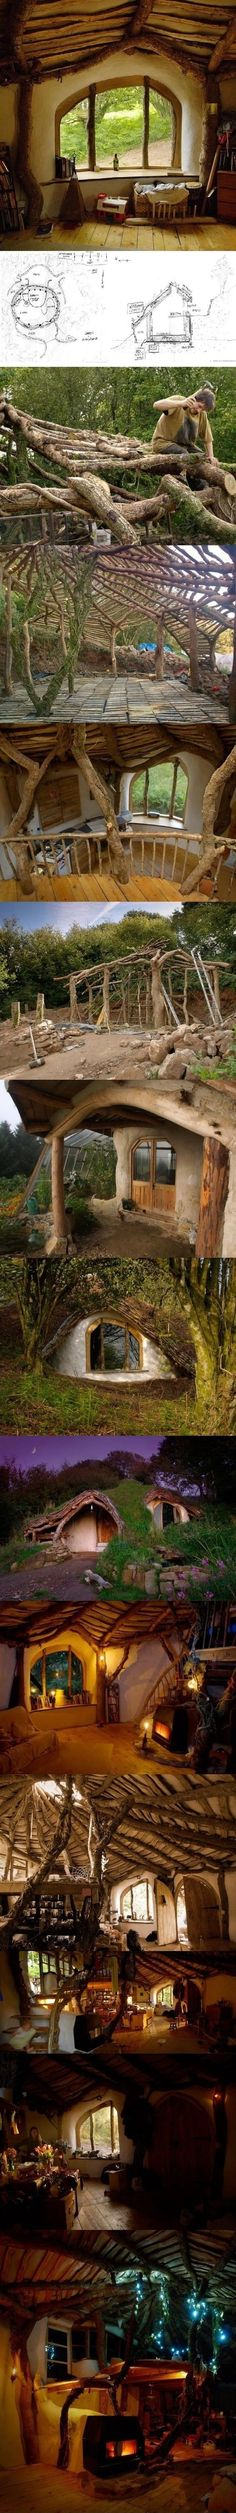 How to build a hobbit house.....will more than likely never have one but the thought is cool